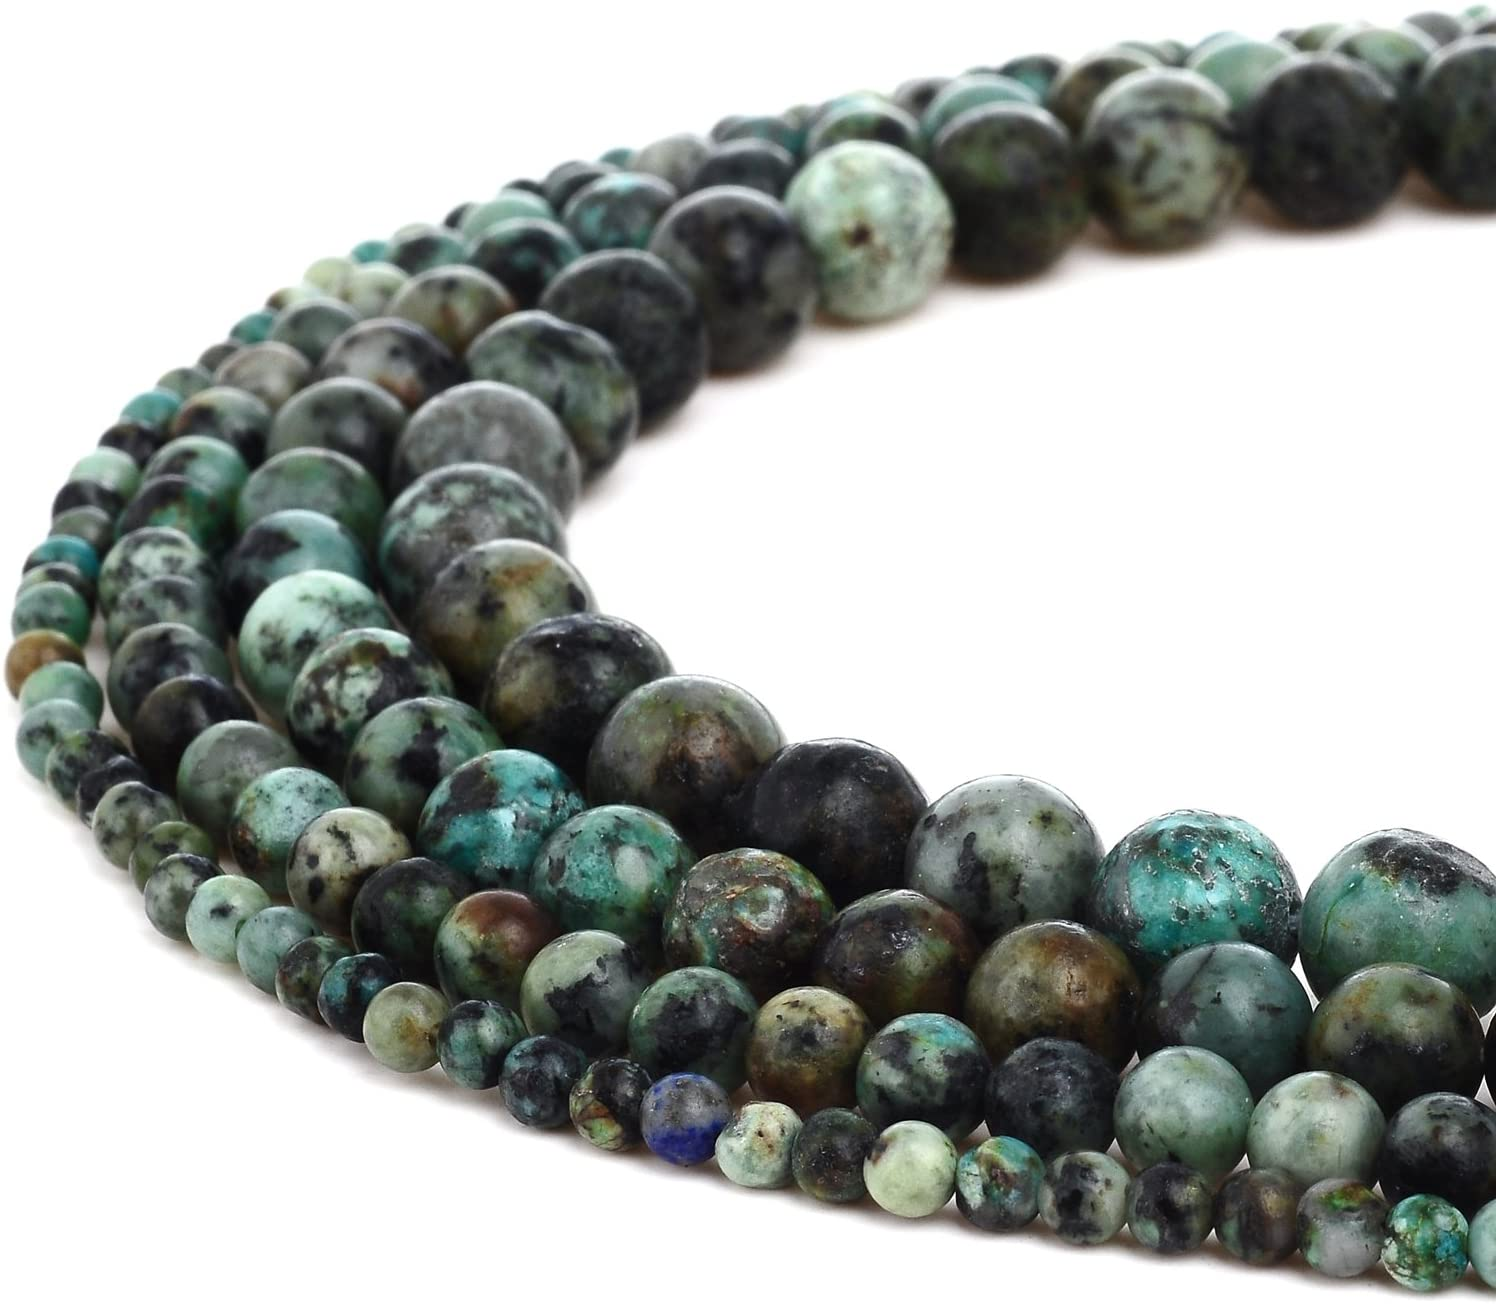 R Natural African Turquoise Gemstone Round Loose Beads for DIY Jewelry Making